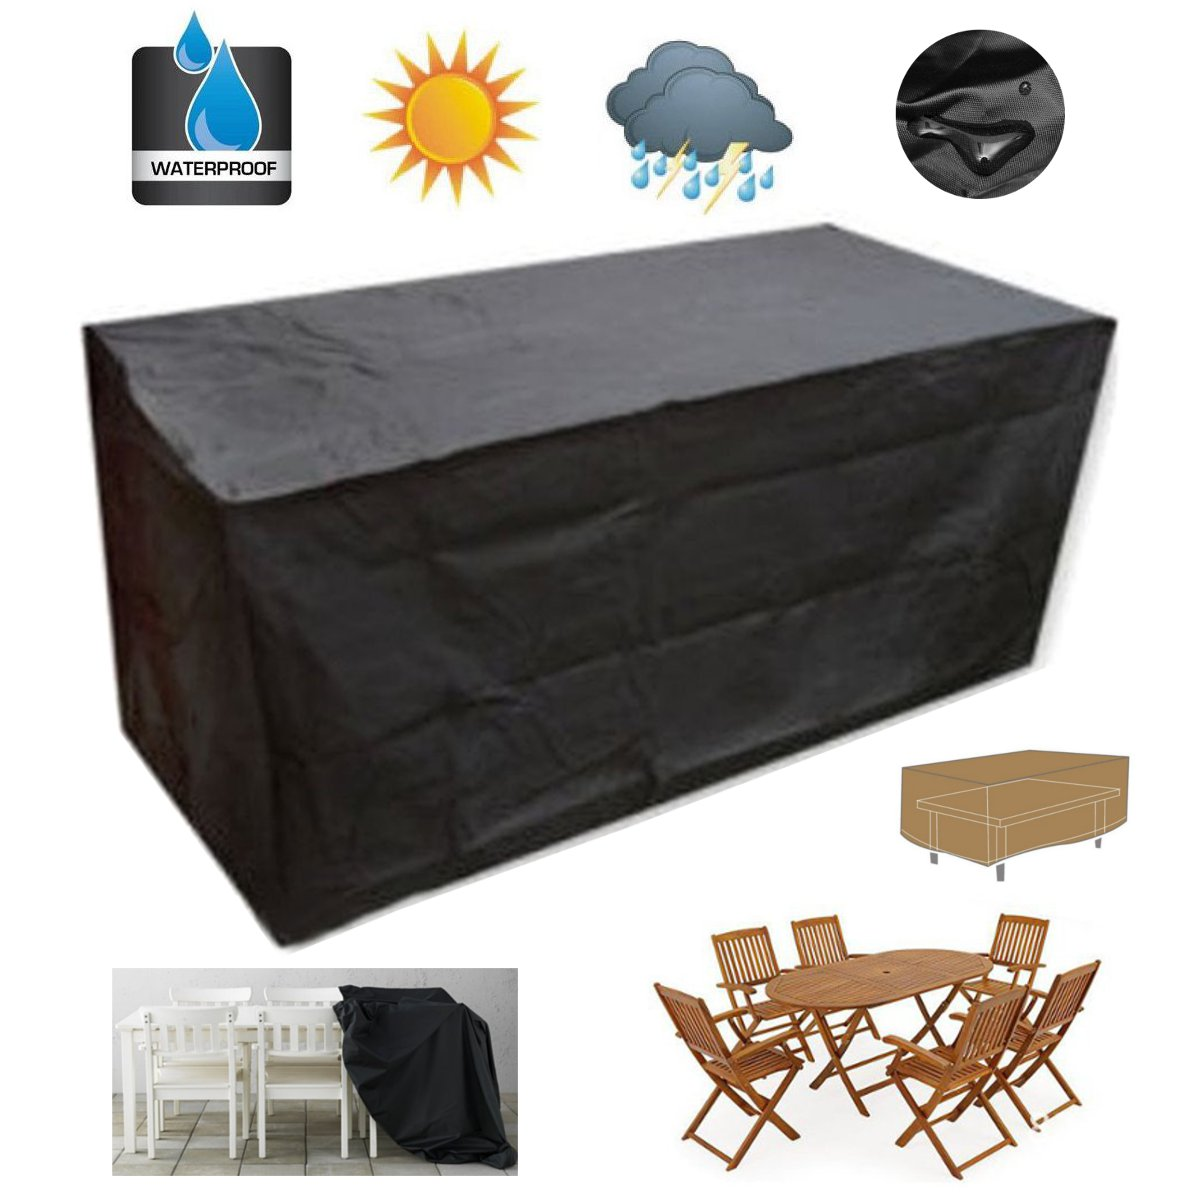 garden patio chair cover 18012074cm outdoor furniture sofa waterproof polyester pvc coated table desk black silver color